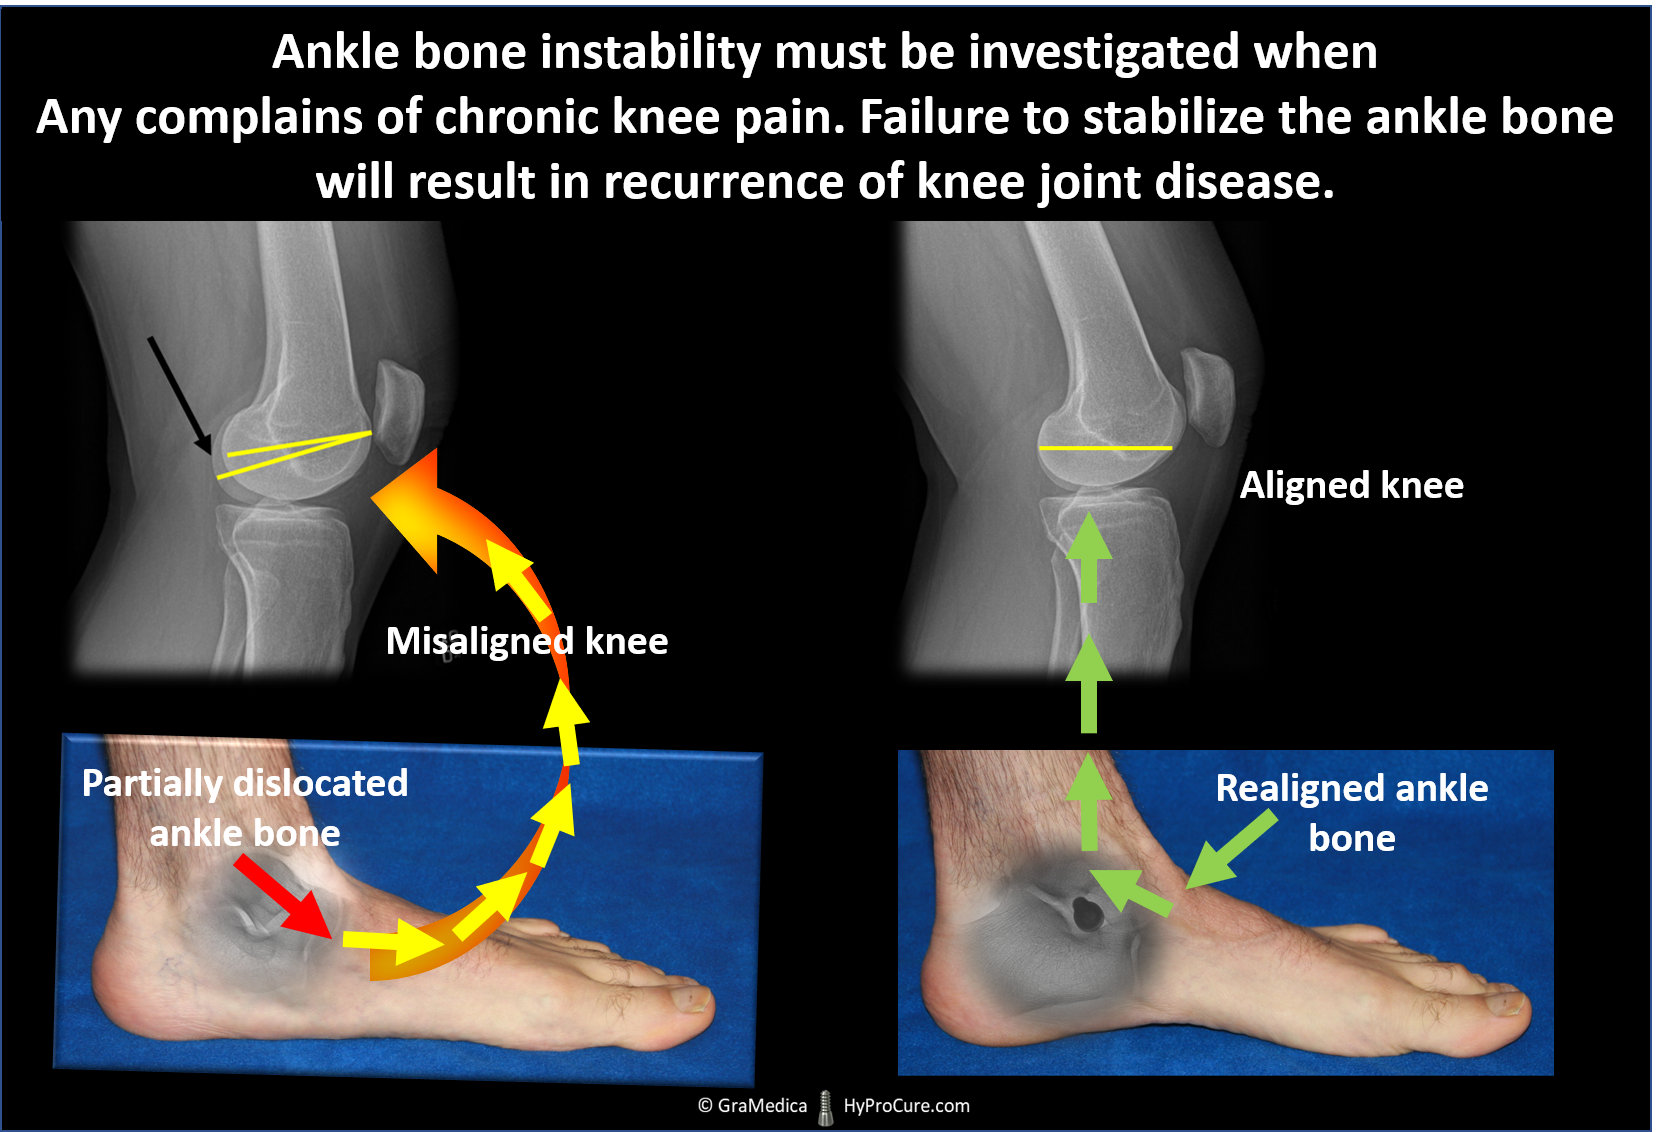 Misaligned knee - partially dislocated ankle bone, Aligned knee - realigned ankle bone